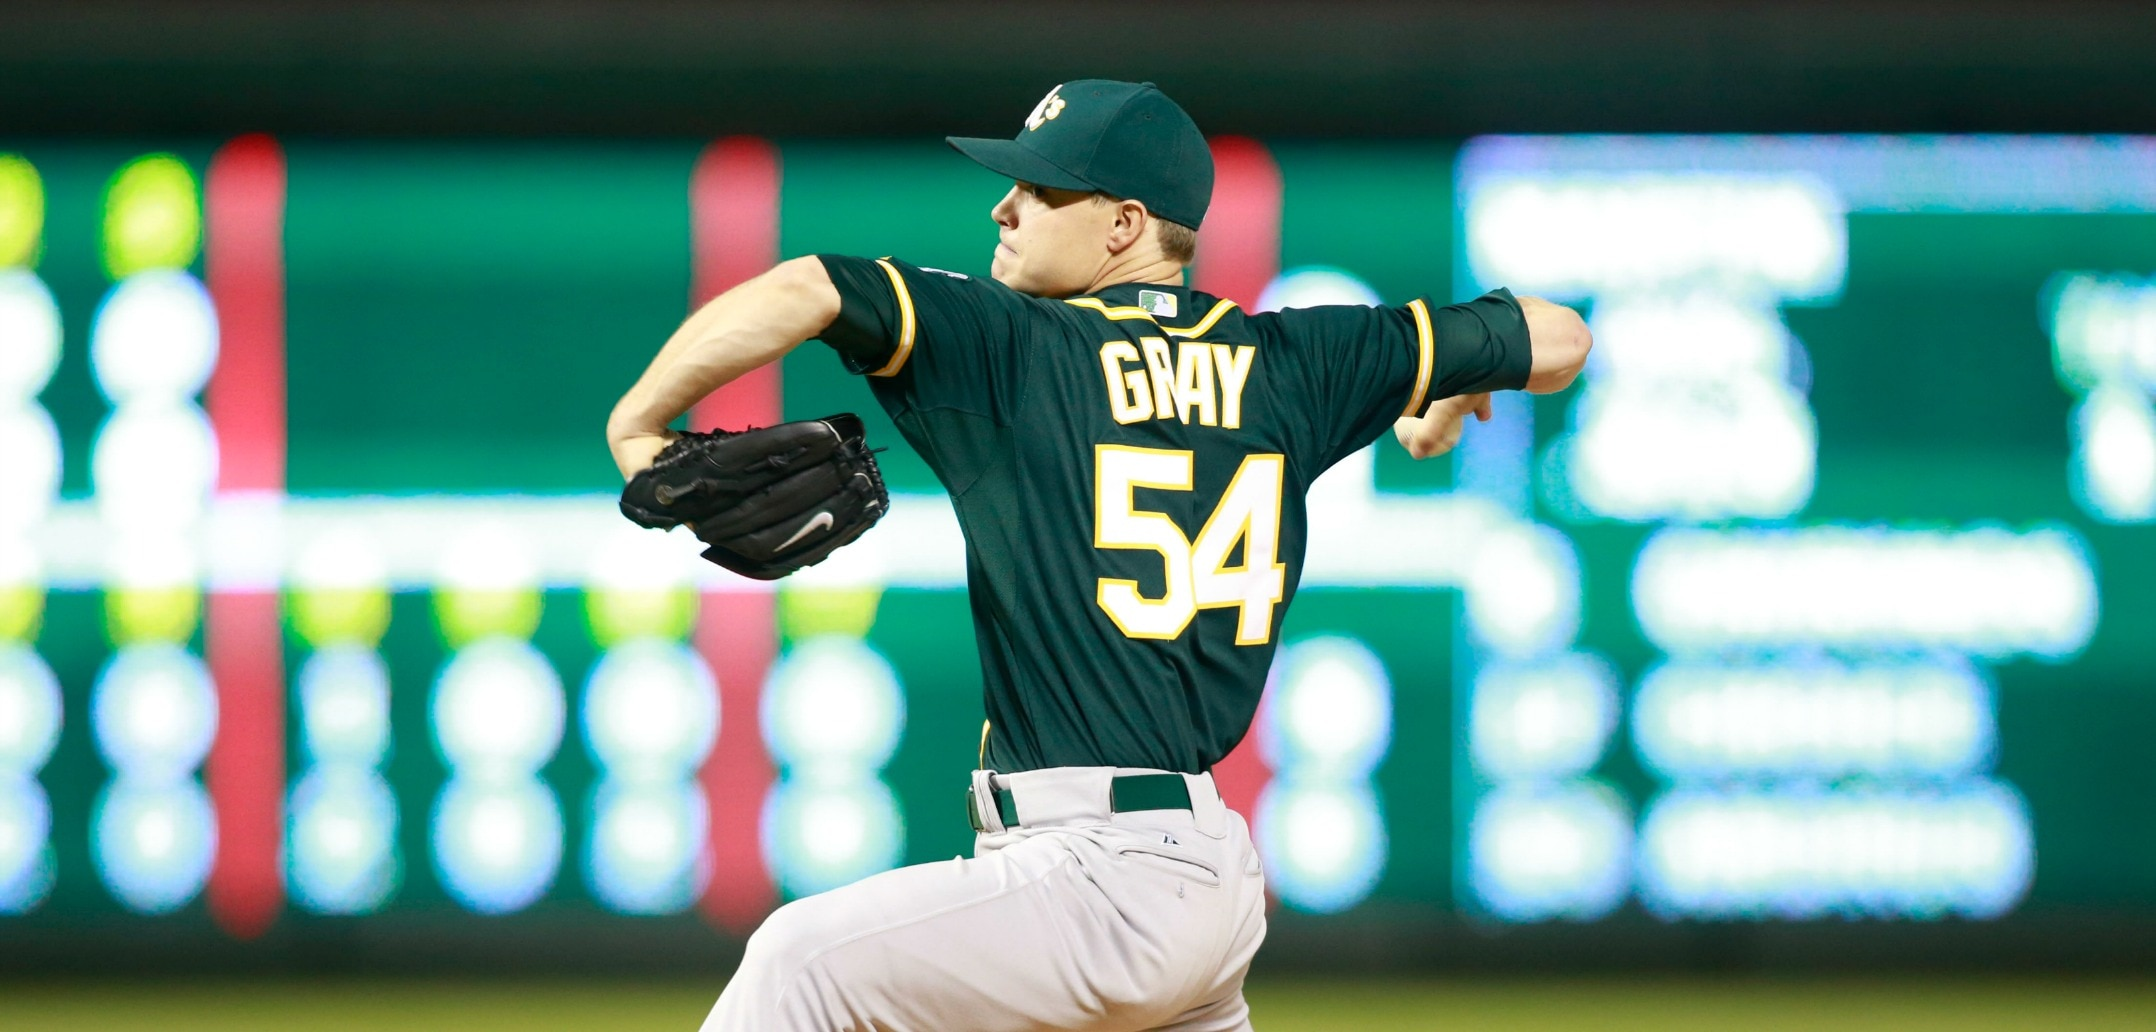 oakland athletics story and hrm How well do you know mlb - oakland athletics.